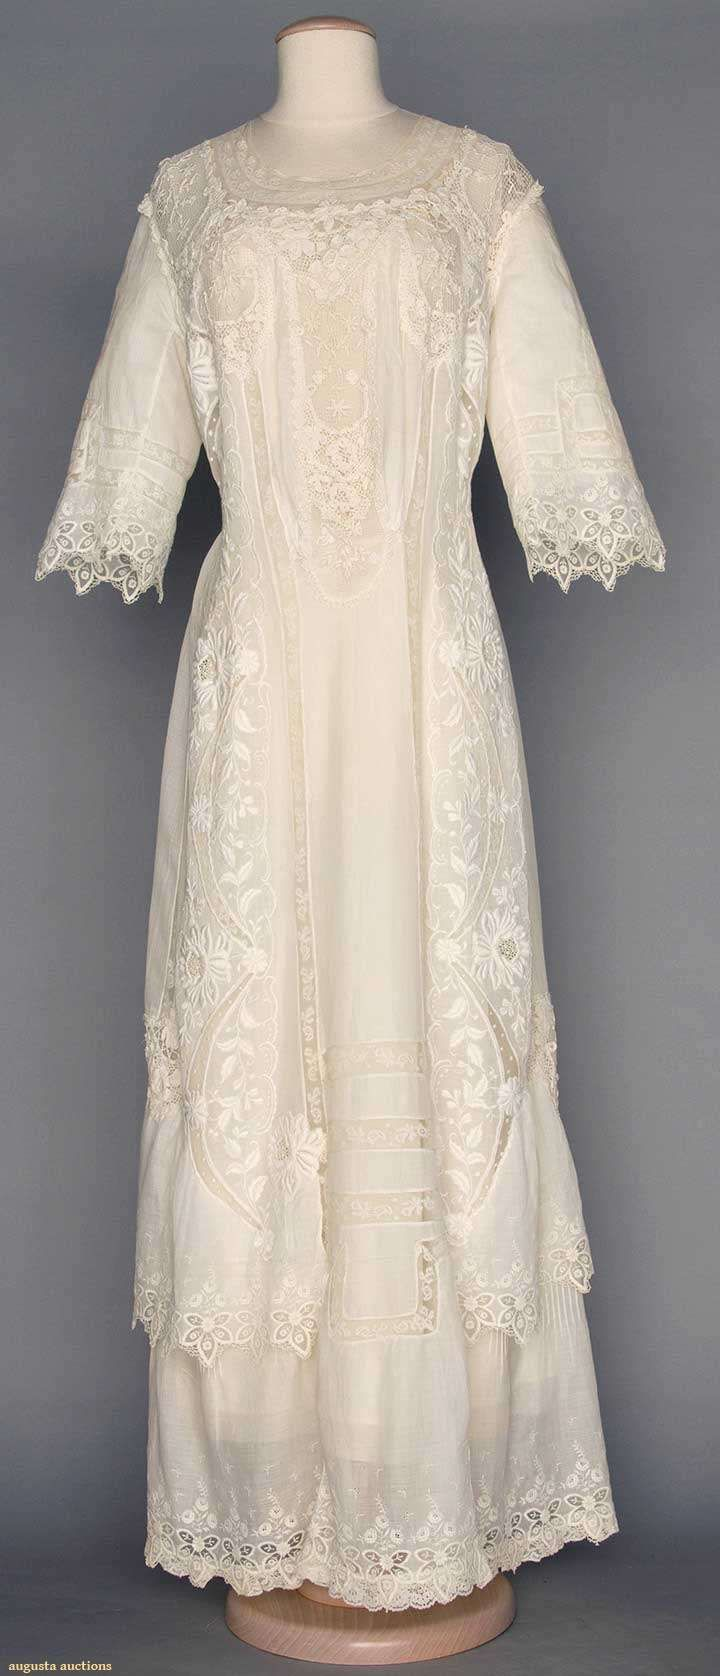 1910 White lace tea gown Augusta Auctions